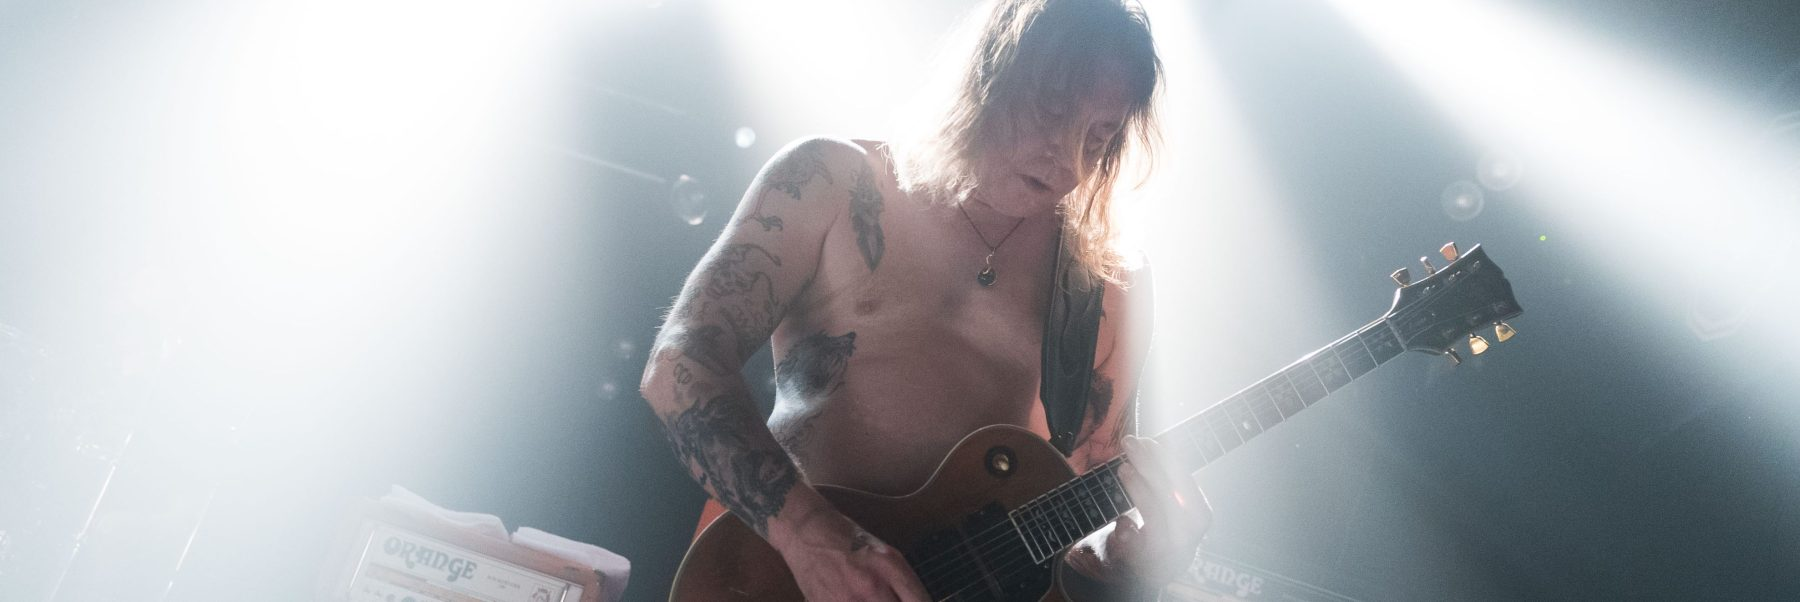 Matt Pike of Sleep performs live on stage during a concert at SO 36 Berlin on May 25, 2018 in Berlin, Germany. (Photo by Andrea Friedrich/Redferns)